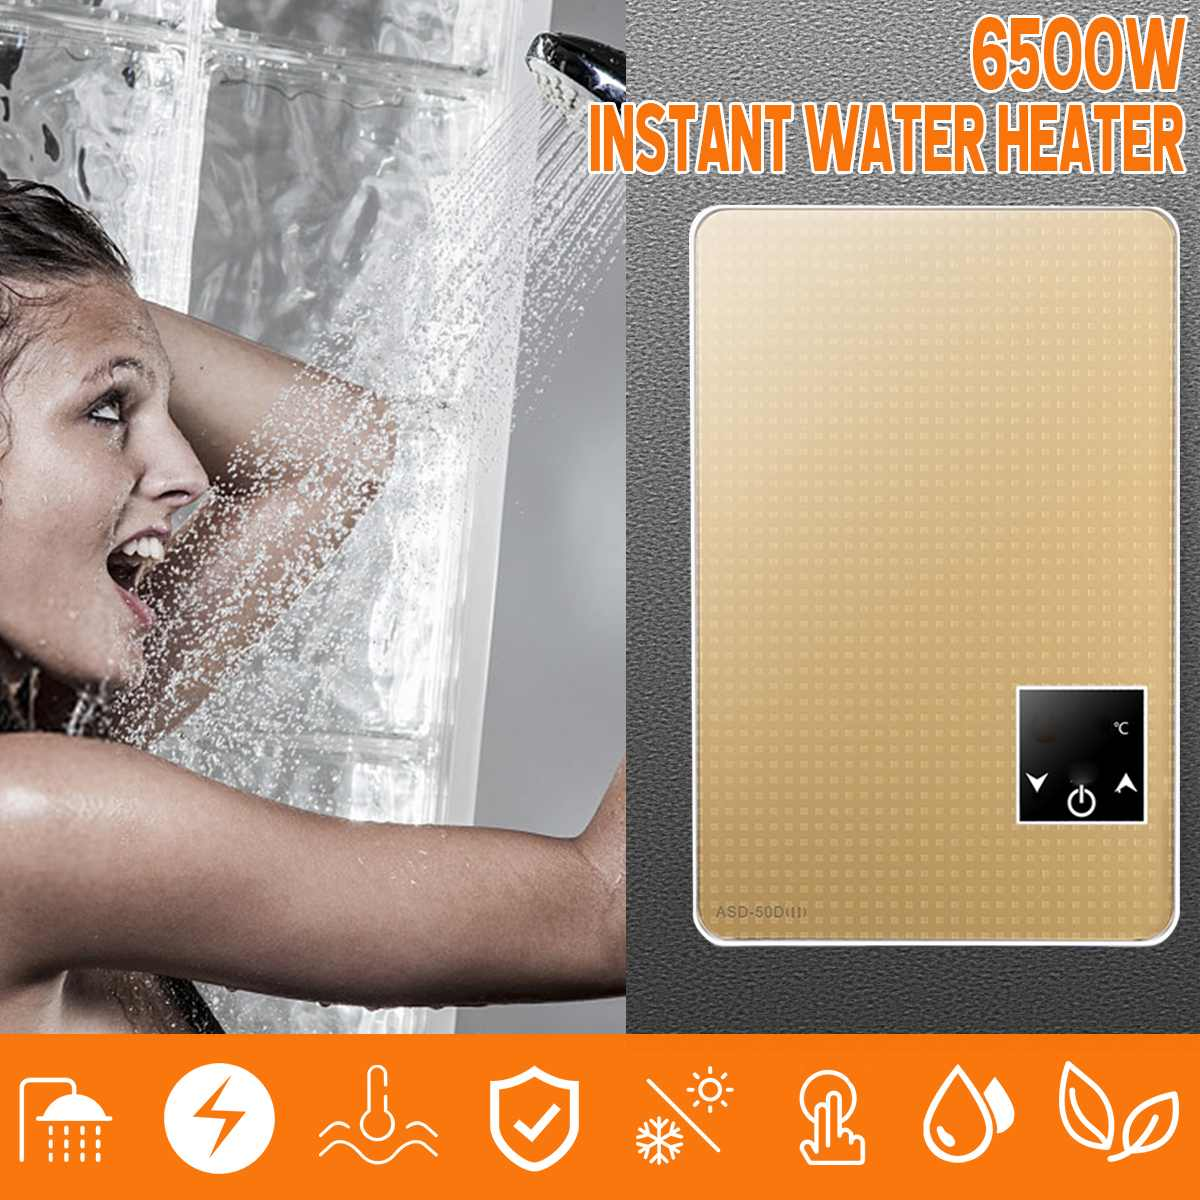 6500W Tankless Instant Electric Hot Water Heater Boiler Bath Shower Nozzle Set Safe Intelligent Large-screen Digital Display6500W Tankless Instant Electric Hot Water Heater Boiler Bath Shower Nozzle Set Safe Intelligent Large-screen Digital Display